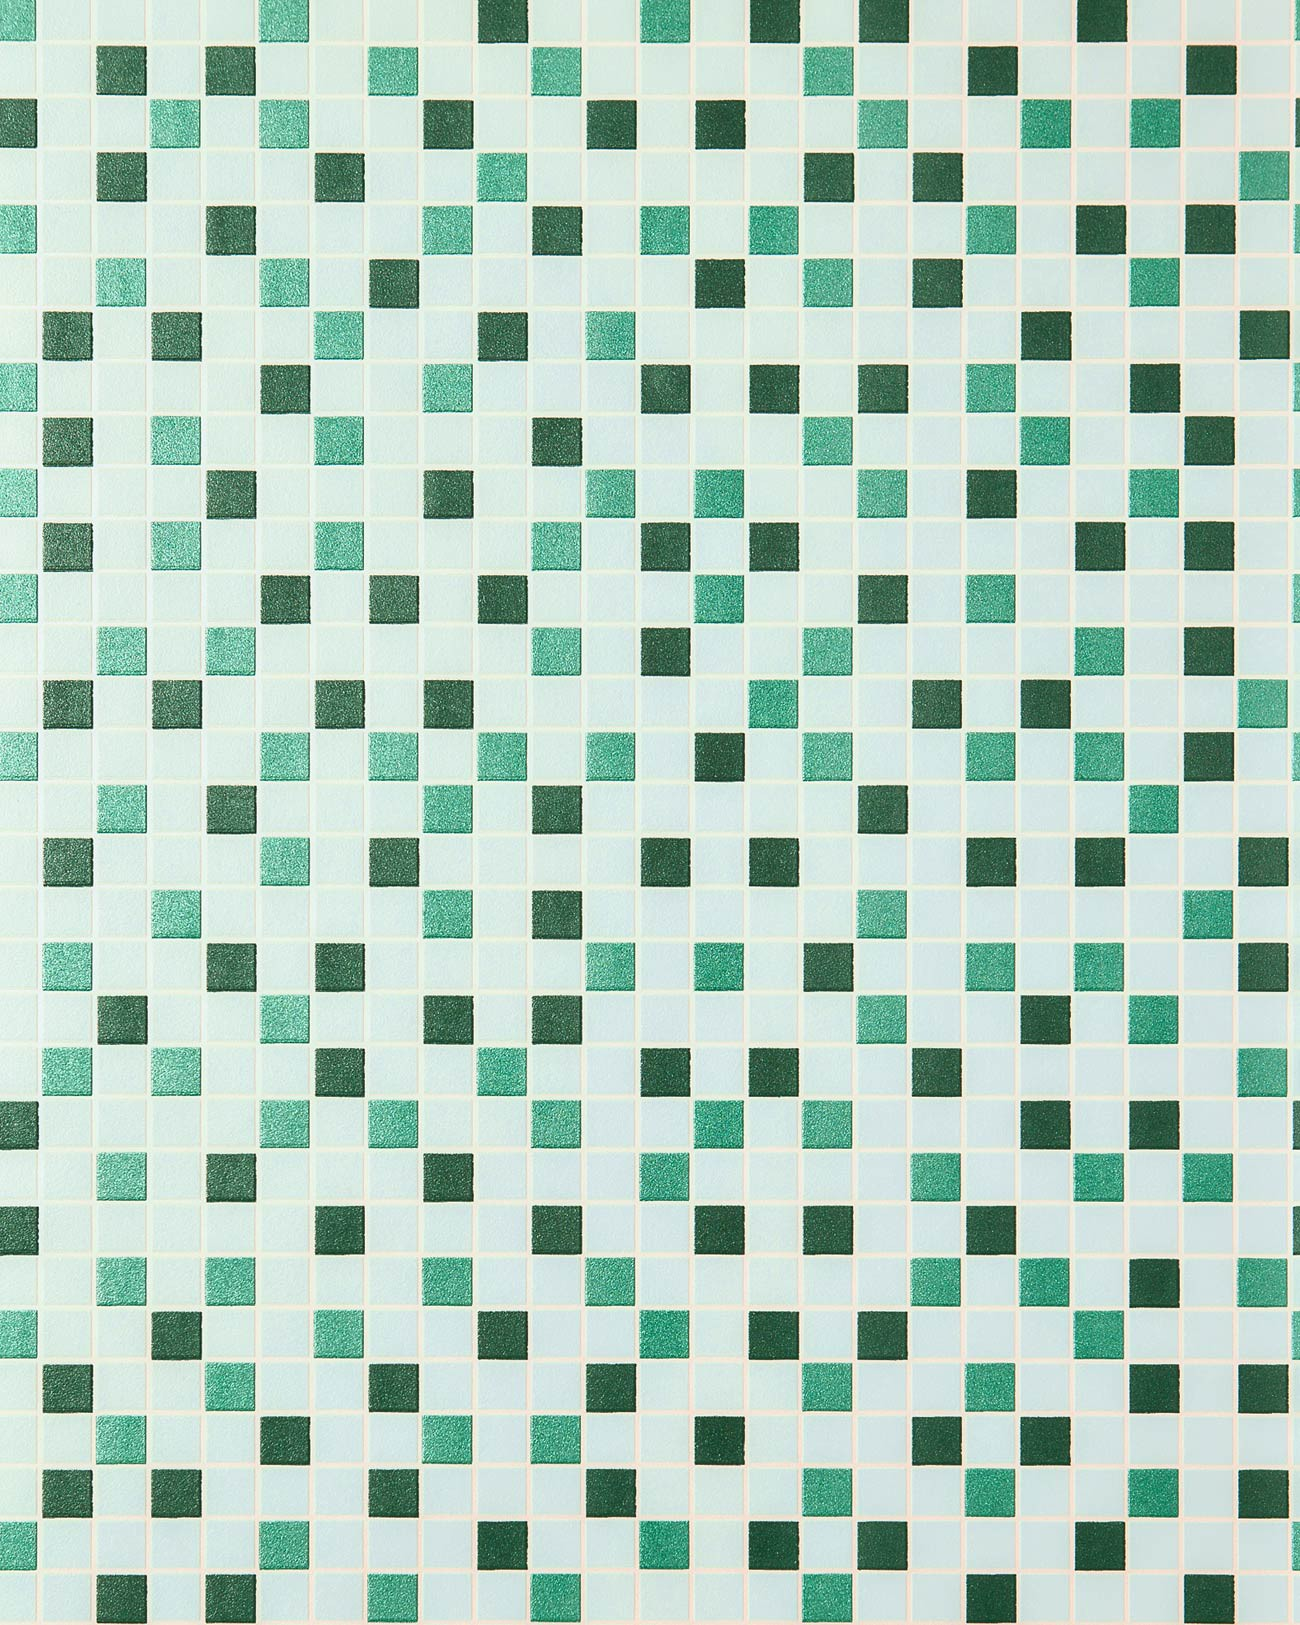 Vinyl Mosaic Wallpaper Tile Stone Decor Wallcovering EDEM 1022 15 Embossed Texture Mint Green Turquoise Emerald Silver